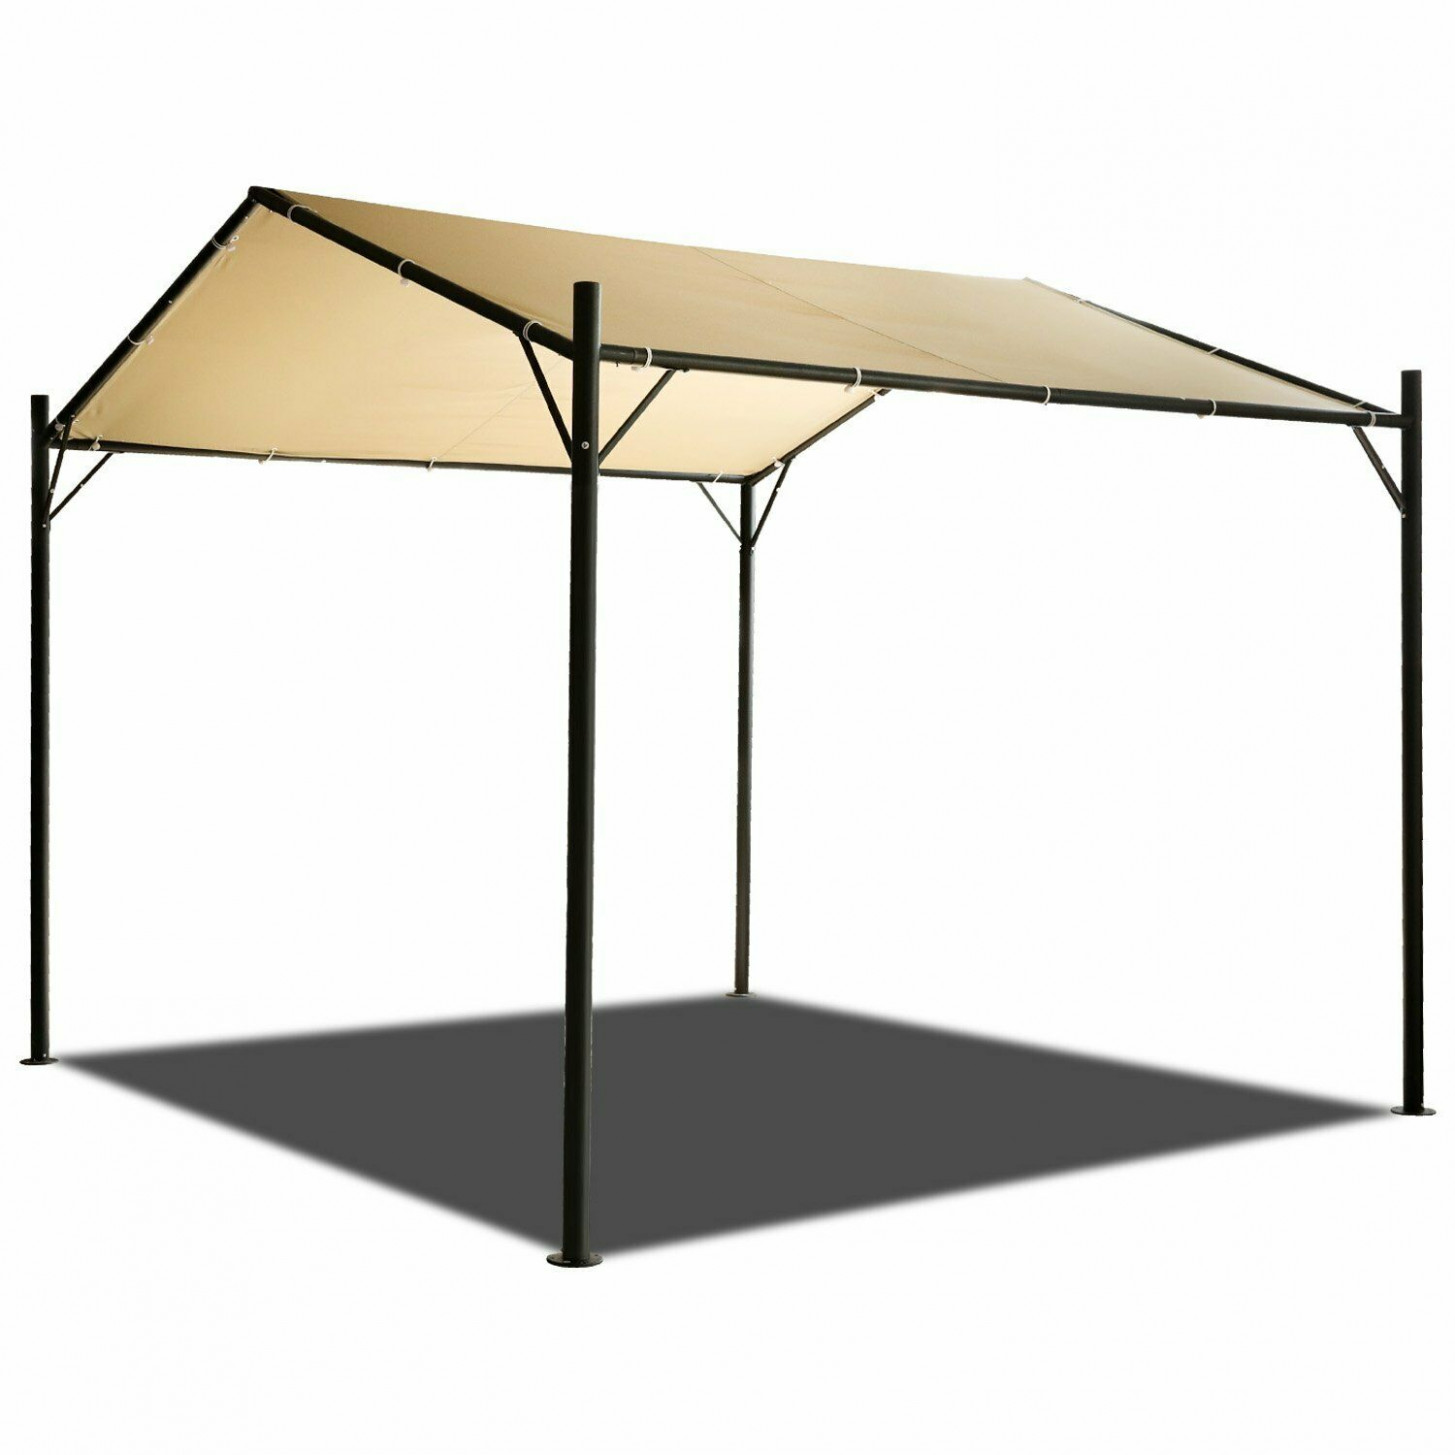 10x10FT Heavy Duty Carport Canopy Garage Car Shelter Tent ..